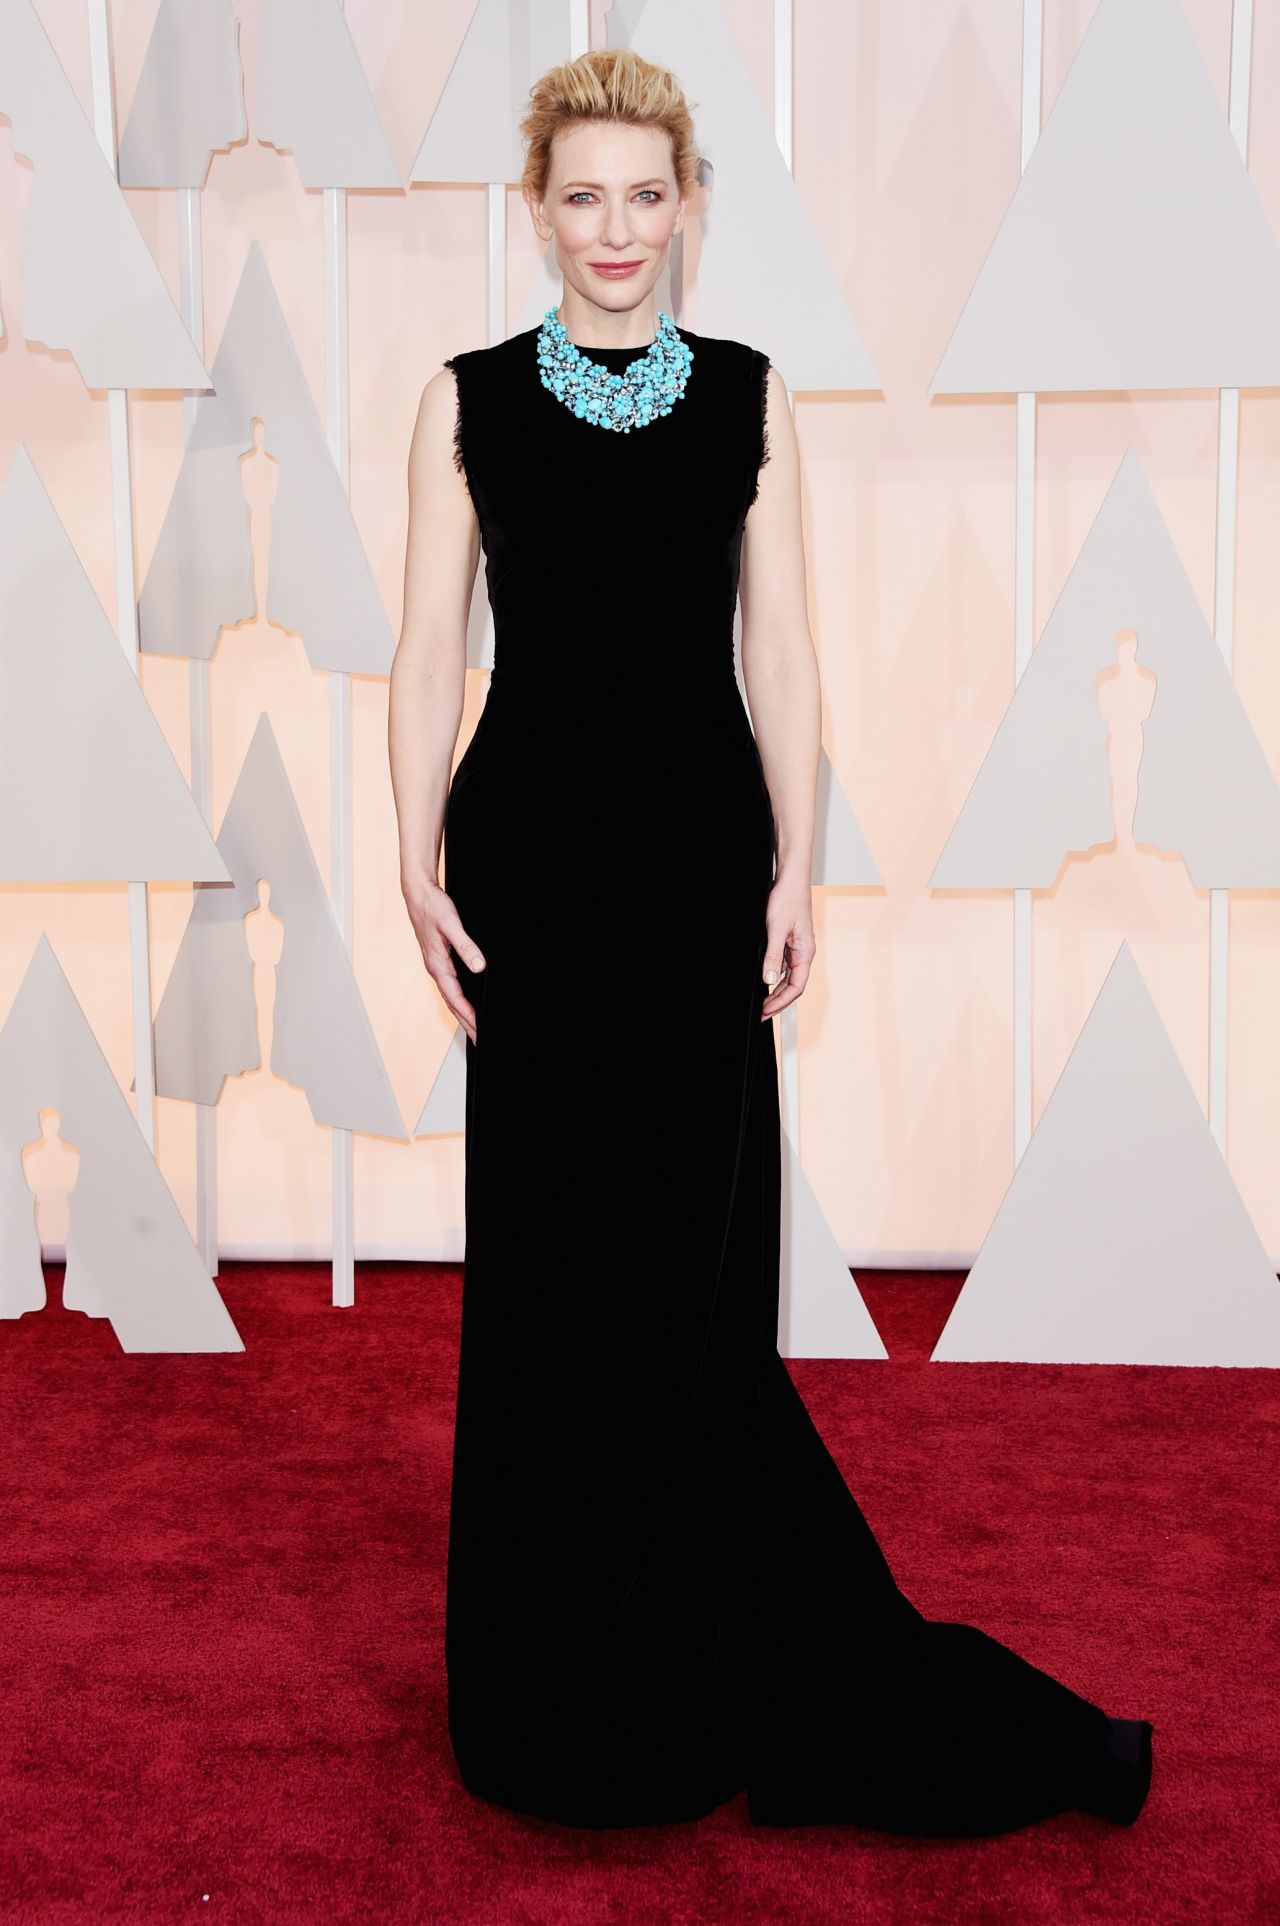 cate blanchett � 2015 oscars red carpet in hollywood